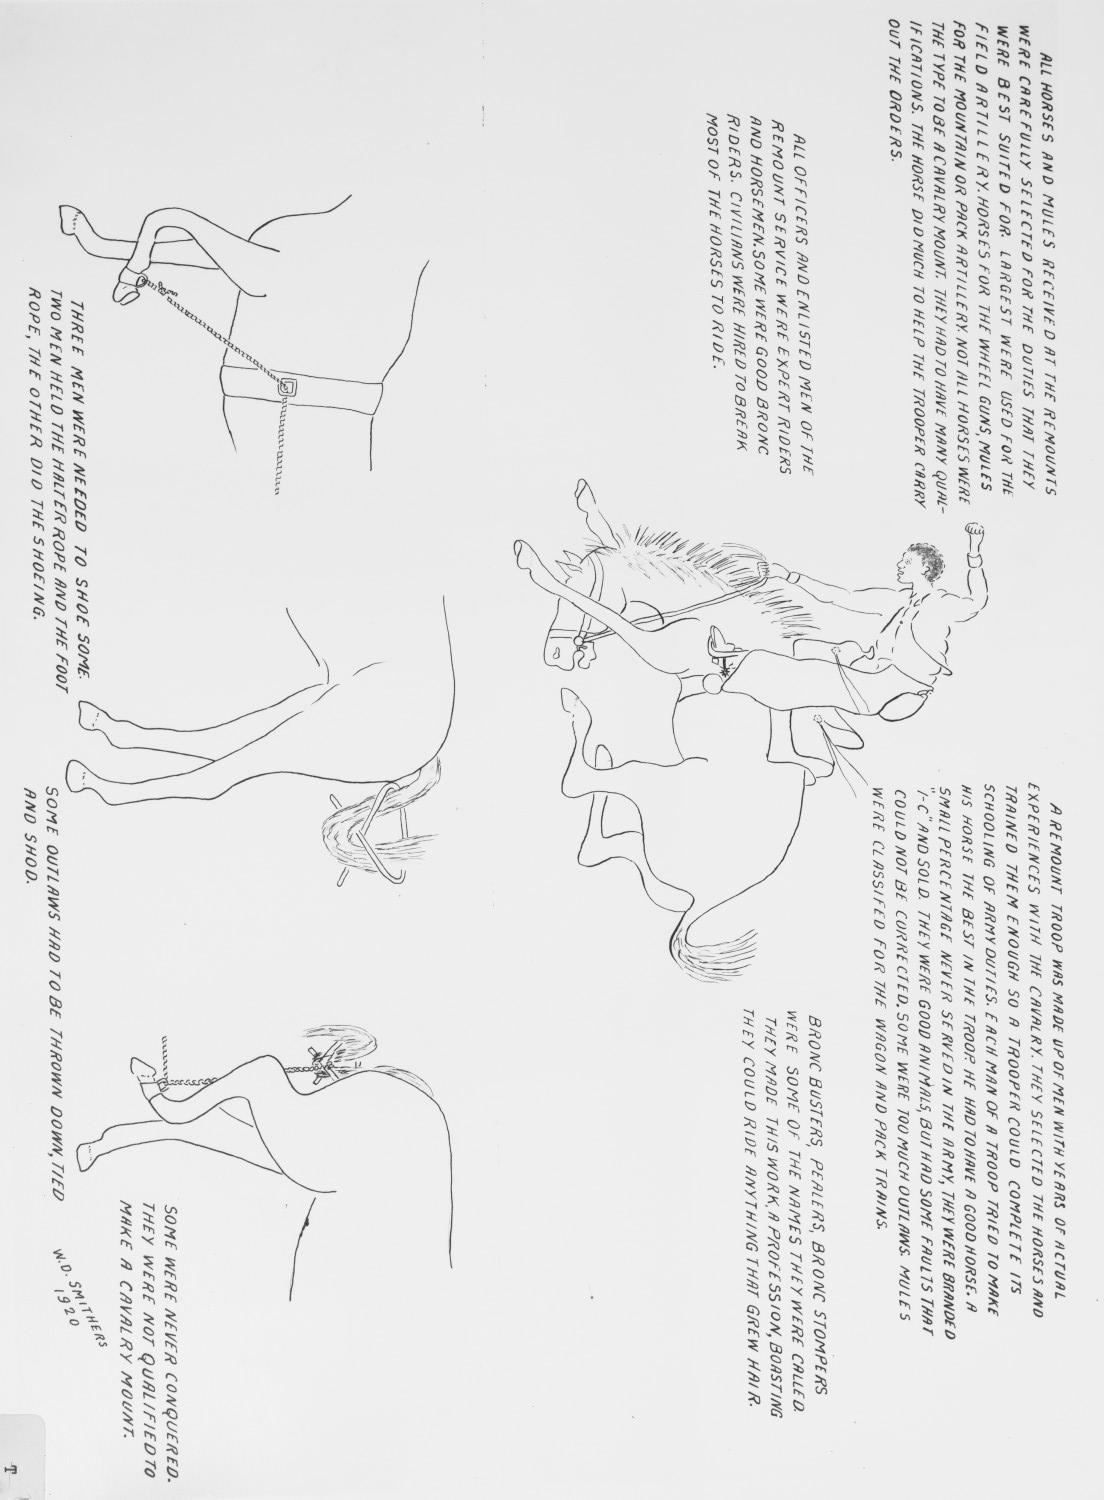 Uses of horses and mules in the U.S. Cavalry. Picture                                                                                                      [Sequence #]: 1 of 1